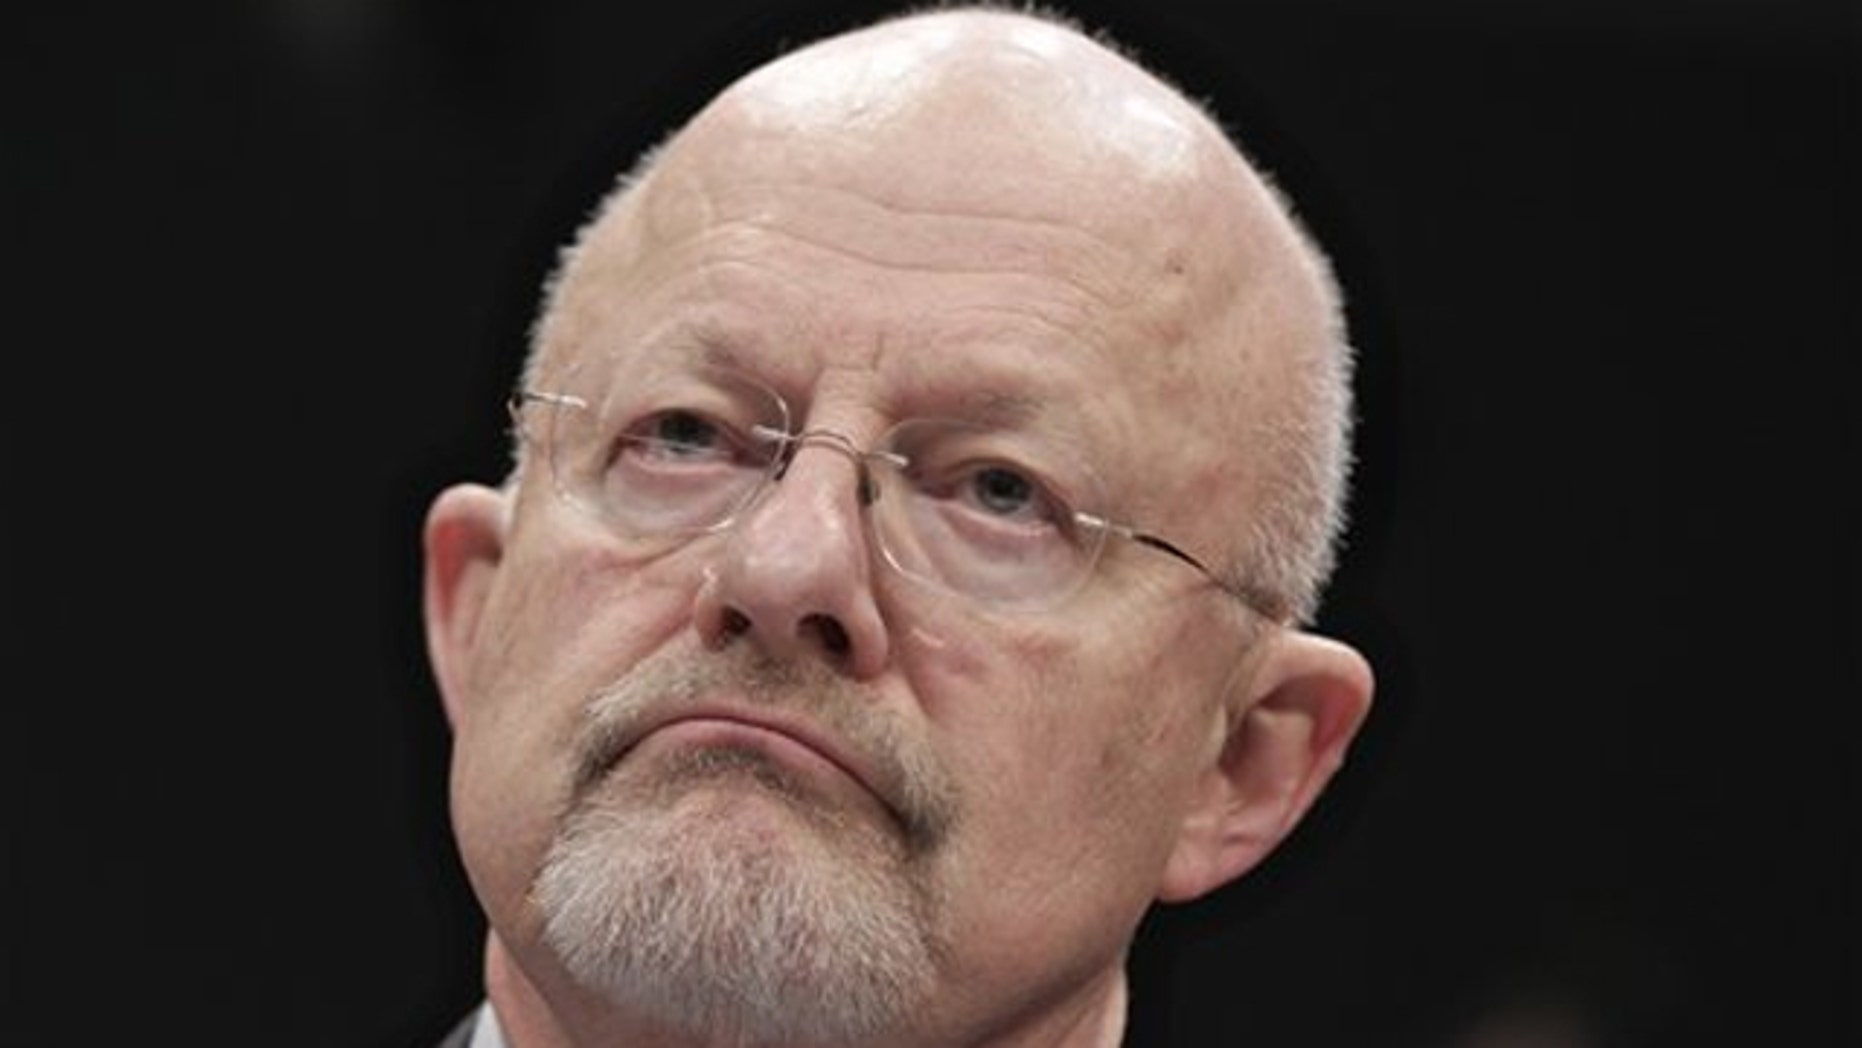 Director of National Intelligence James Clapper testifies on Capitol Hill Feb. 10 before the House Intelligence Committee.